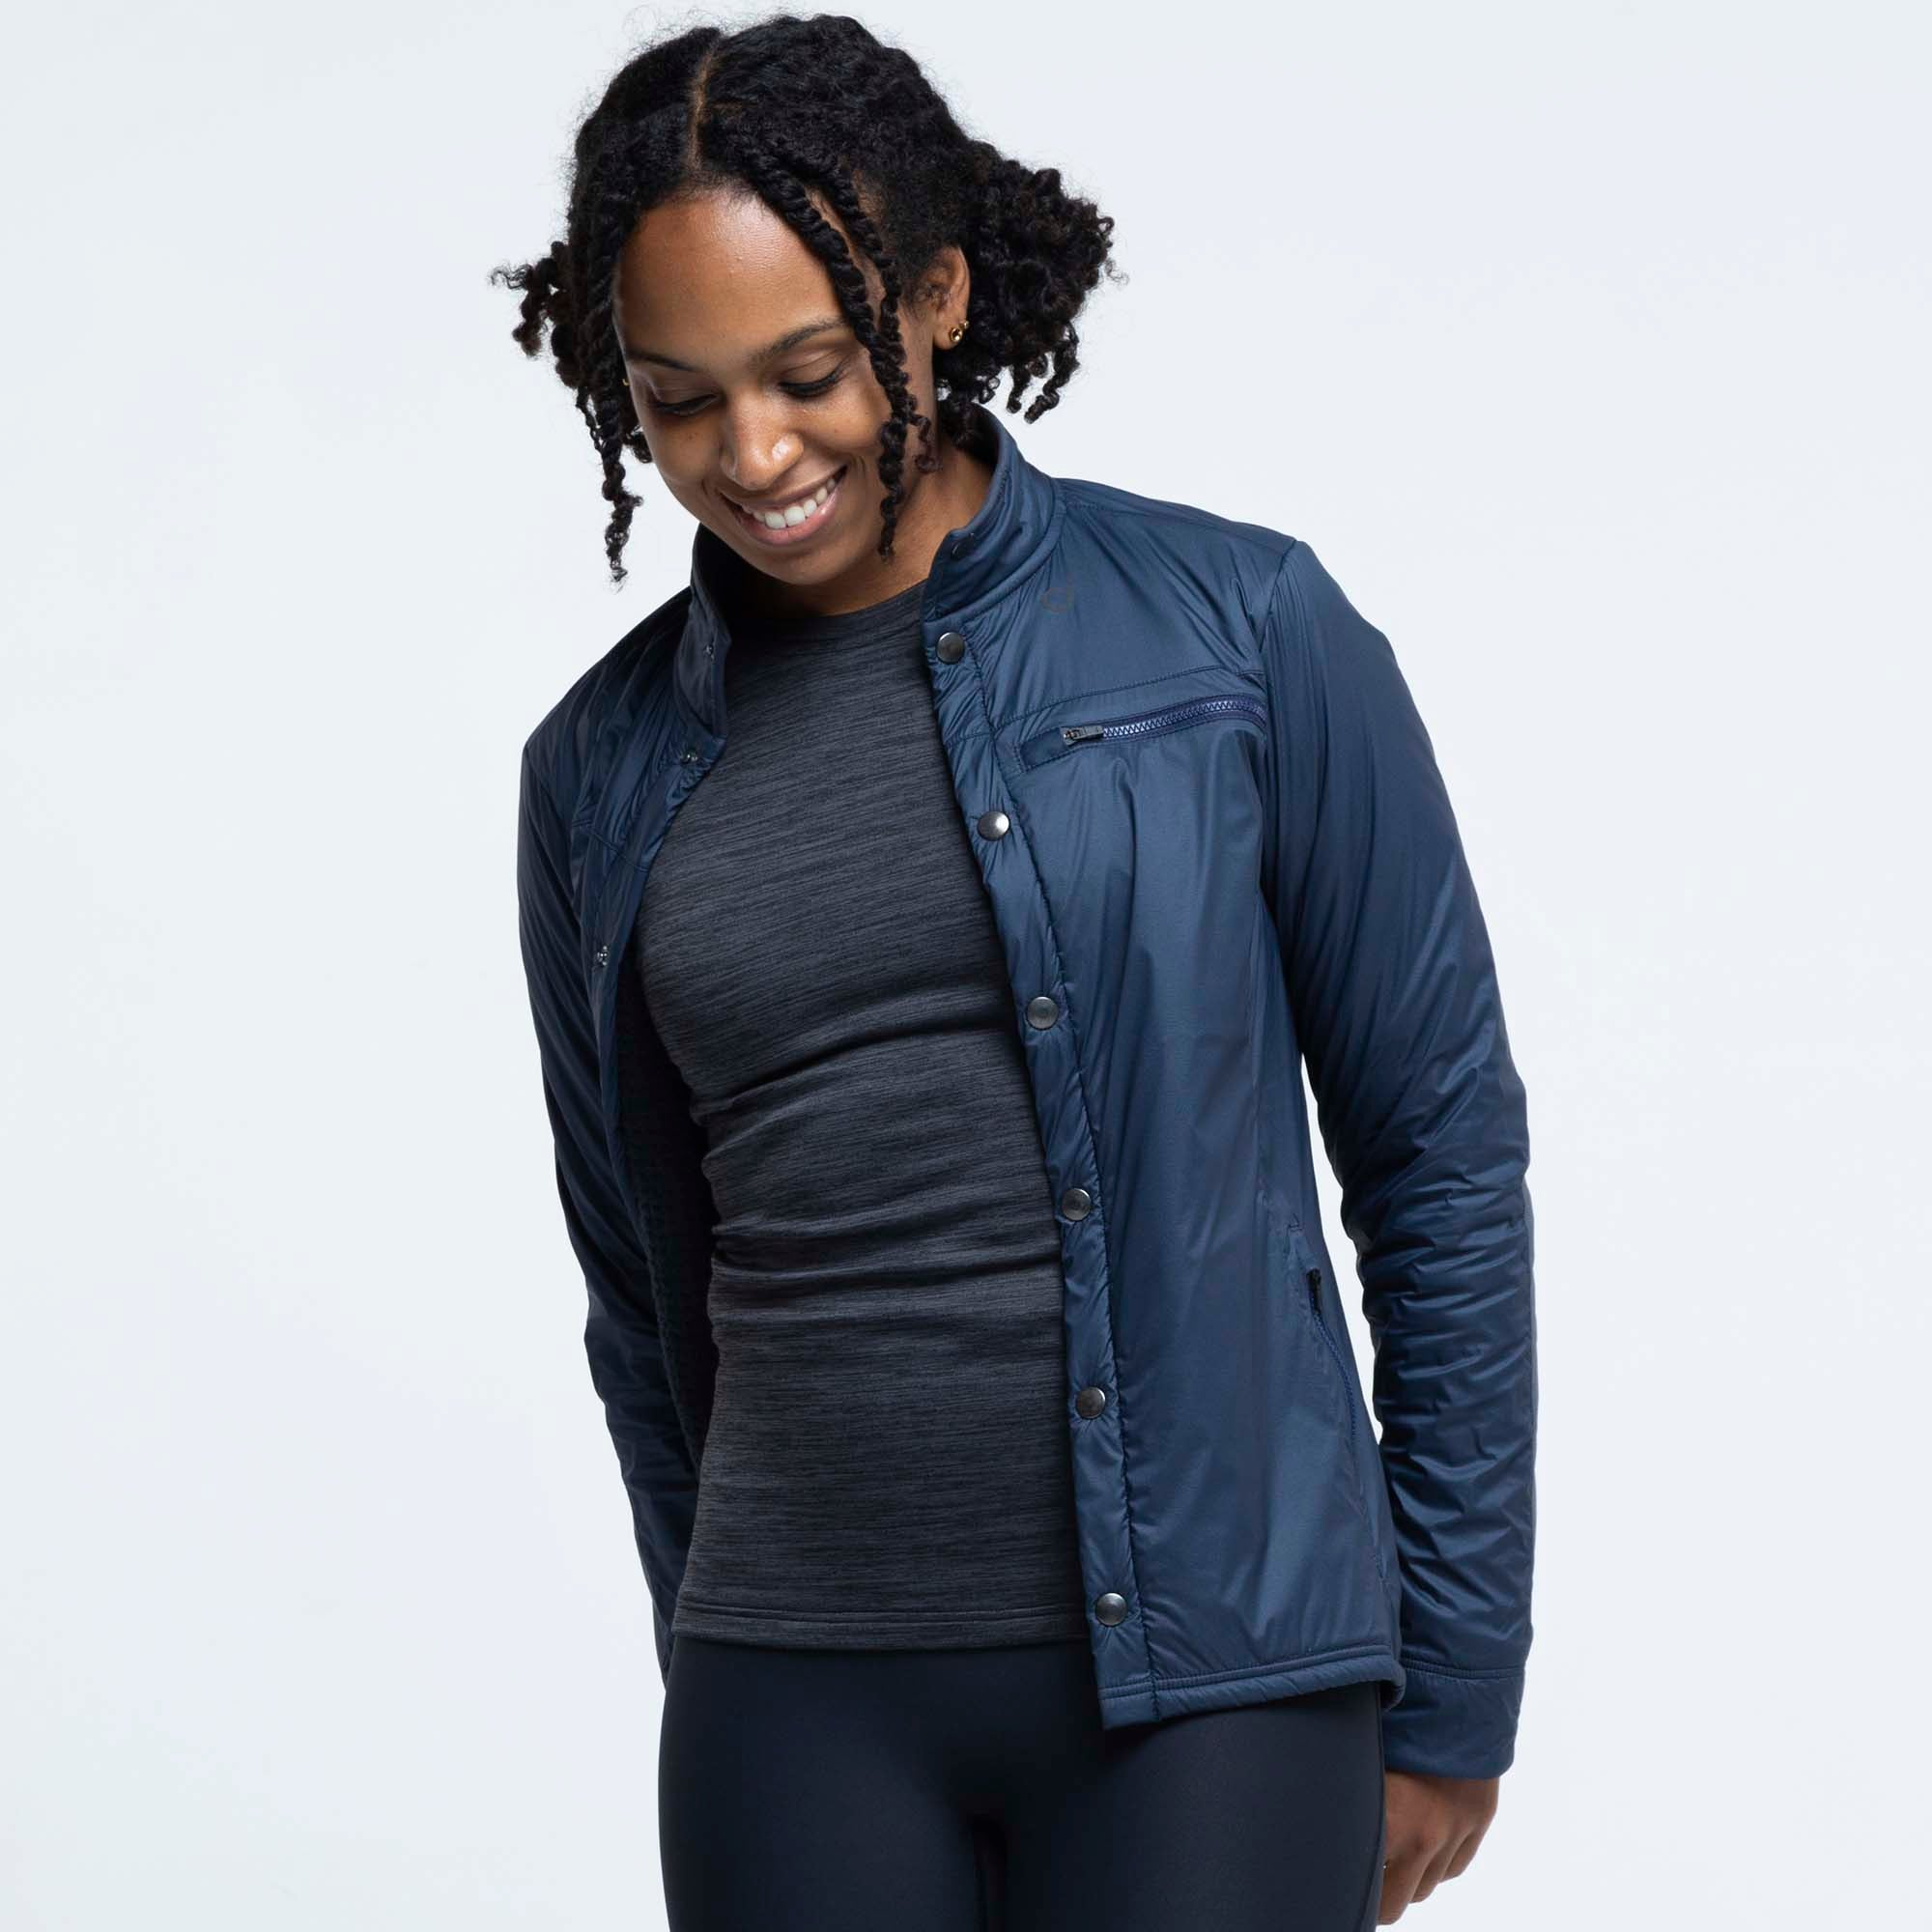 Women's RECON Snap Jacket